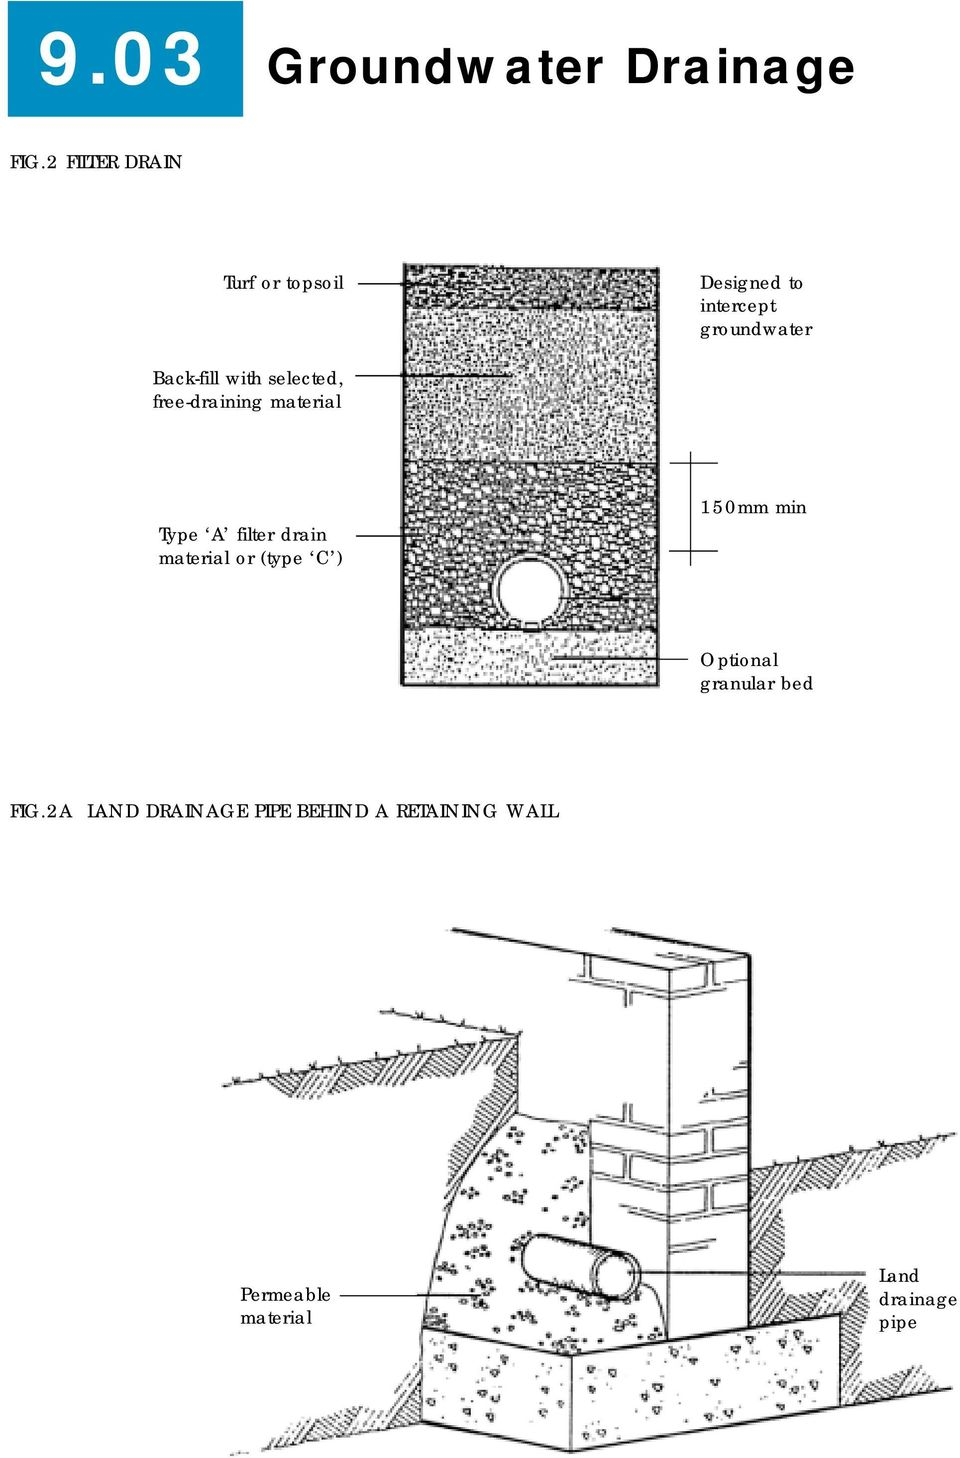 with selected, freedraining material Type A filter drain material or (type